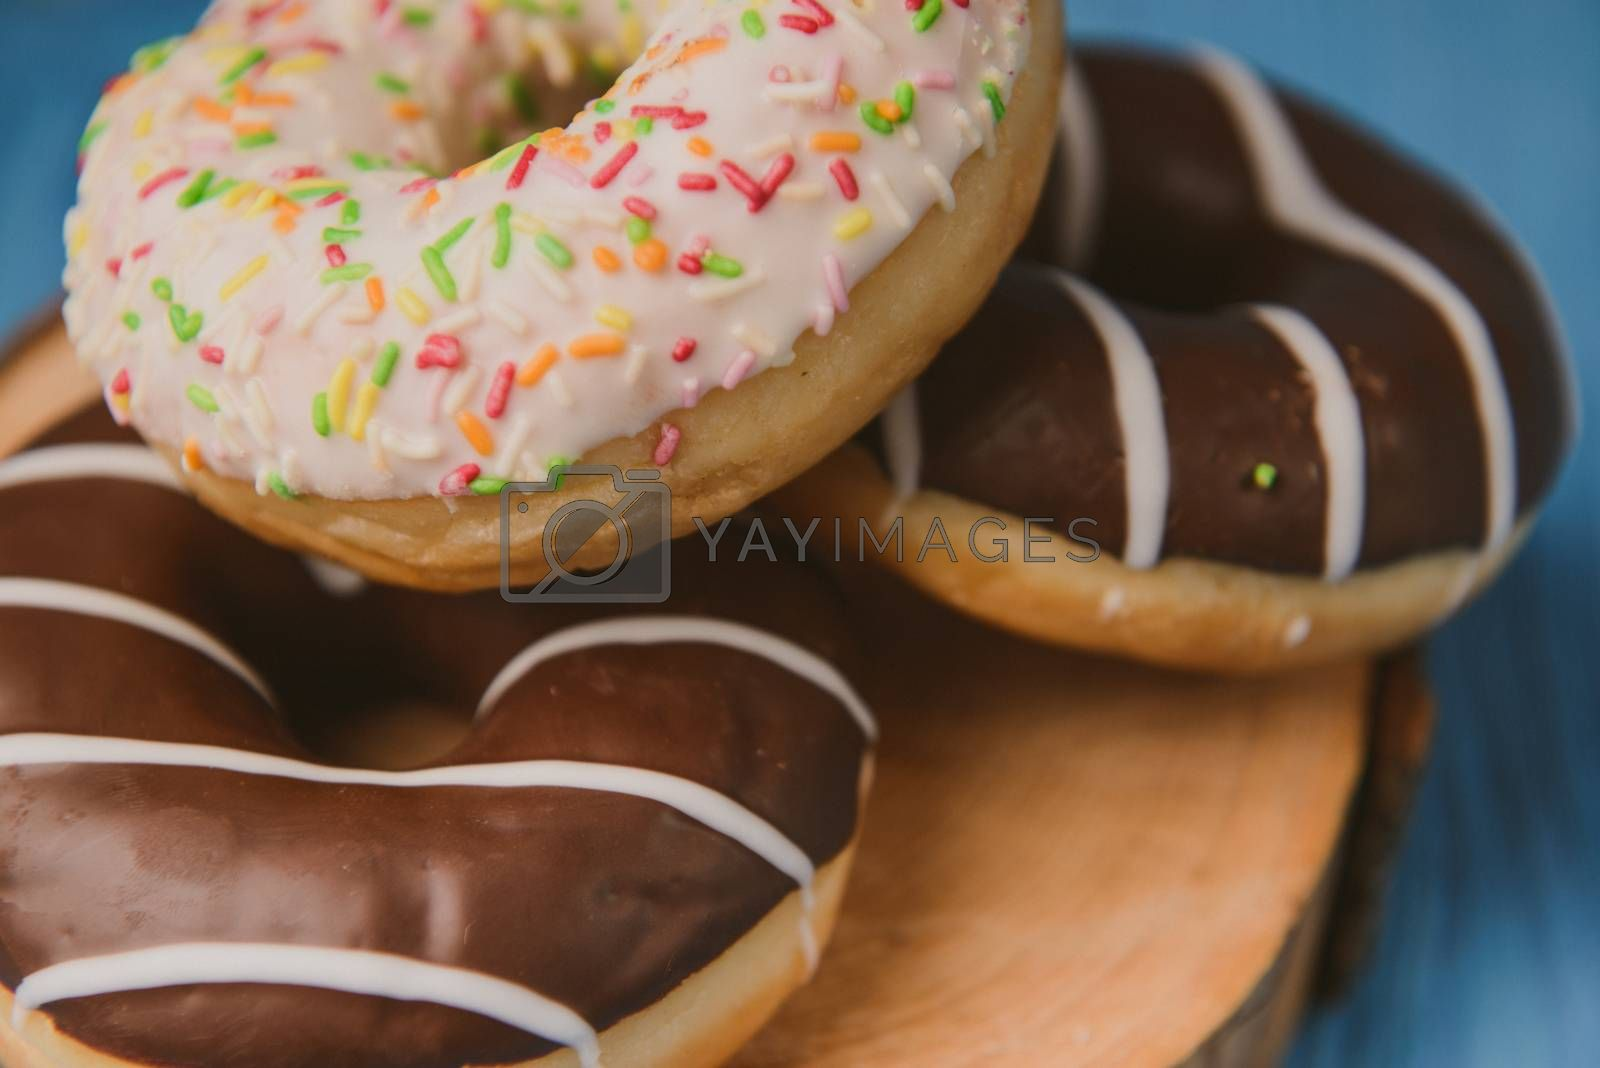 donuts lying on the table. blue background.